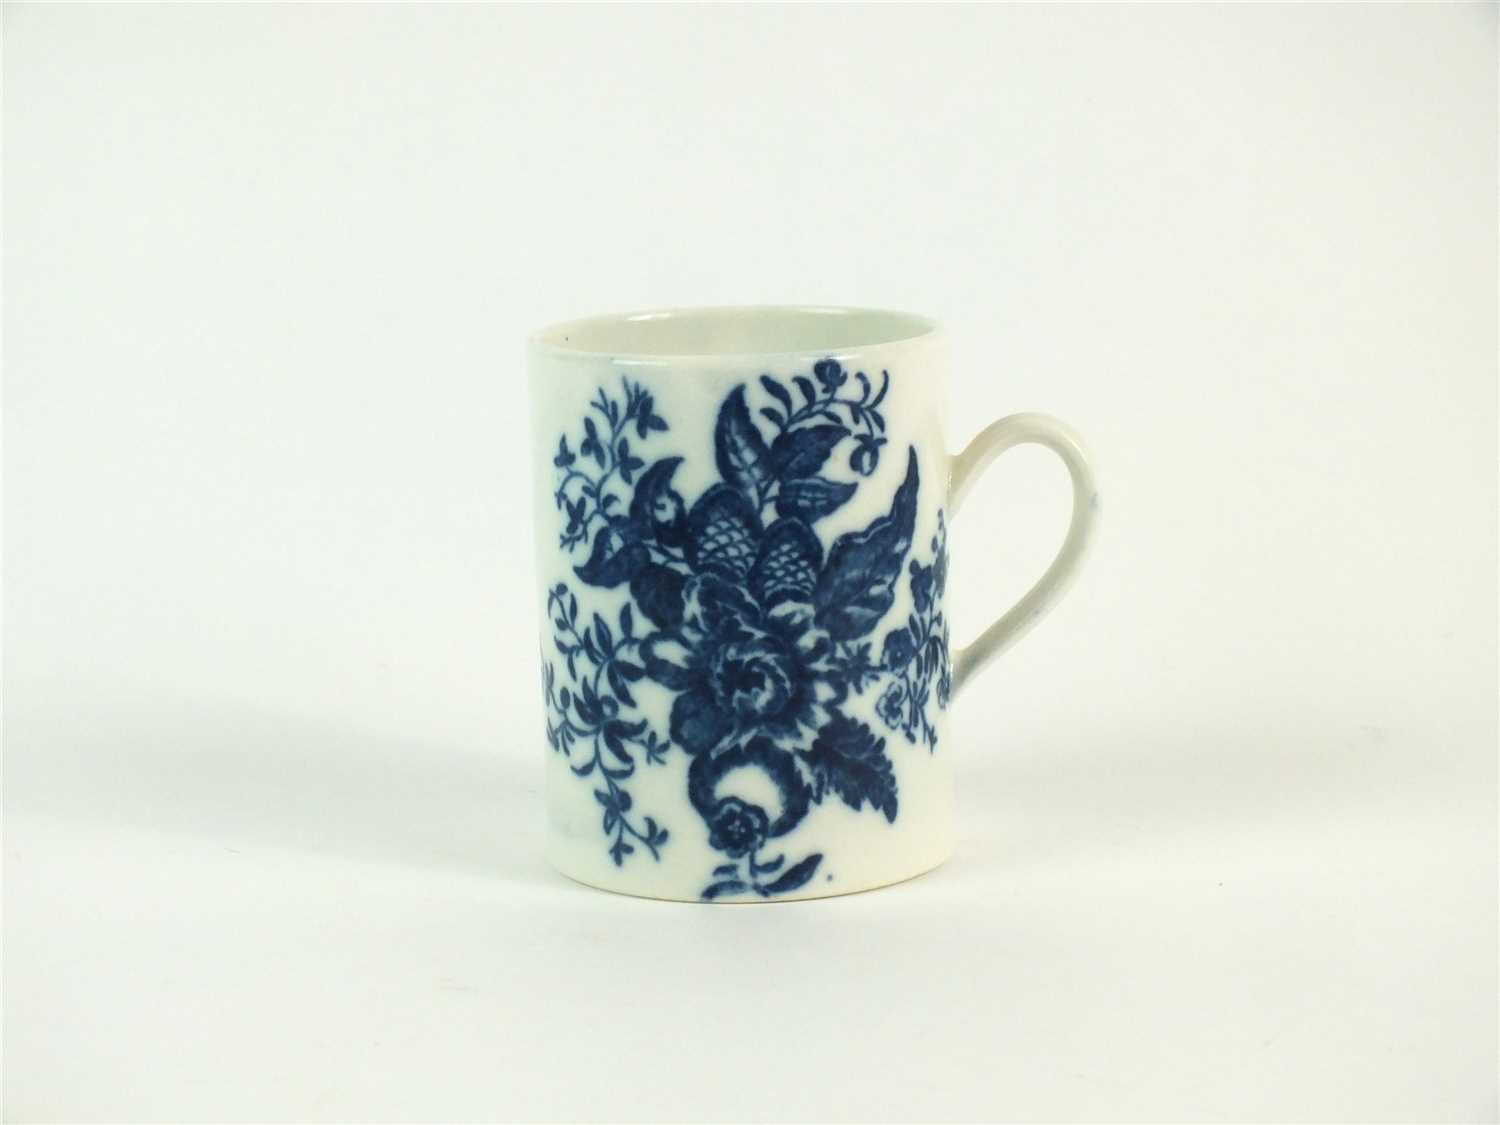 Lot 54-A Caughley mug in the Pine Cone pattern